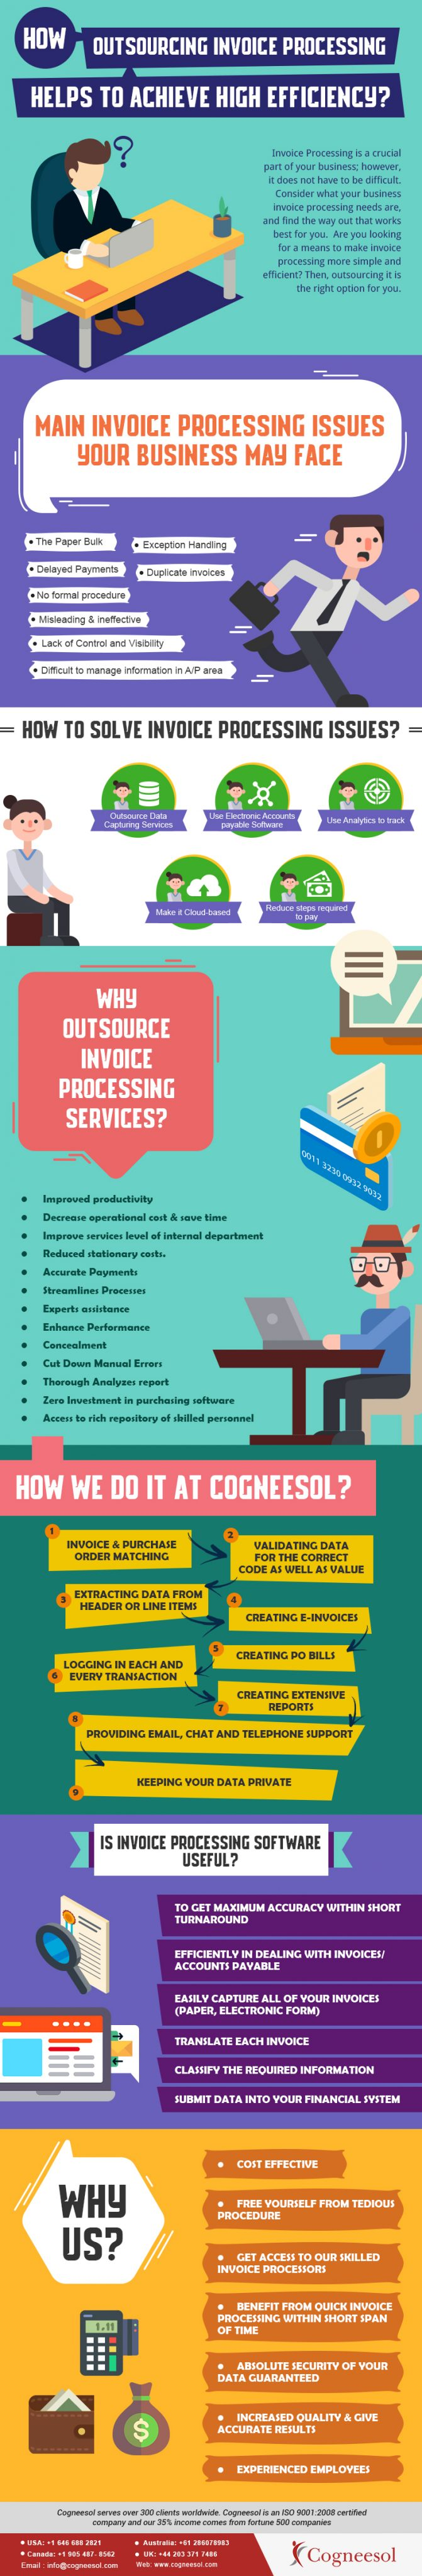 How Outsourcing Invoice Processing Helps To Achieve High Efficiency - Outsource invoice processing